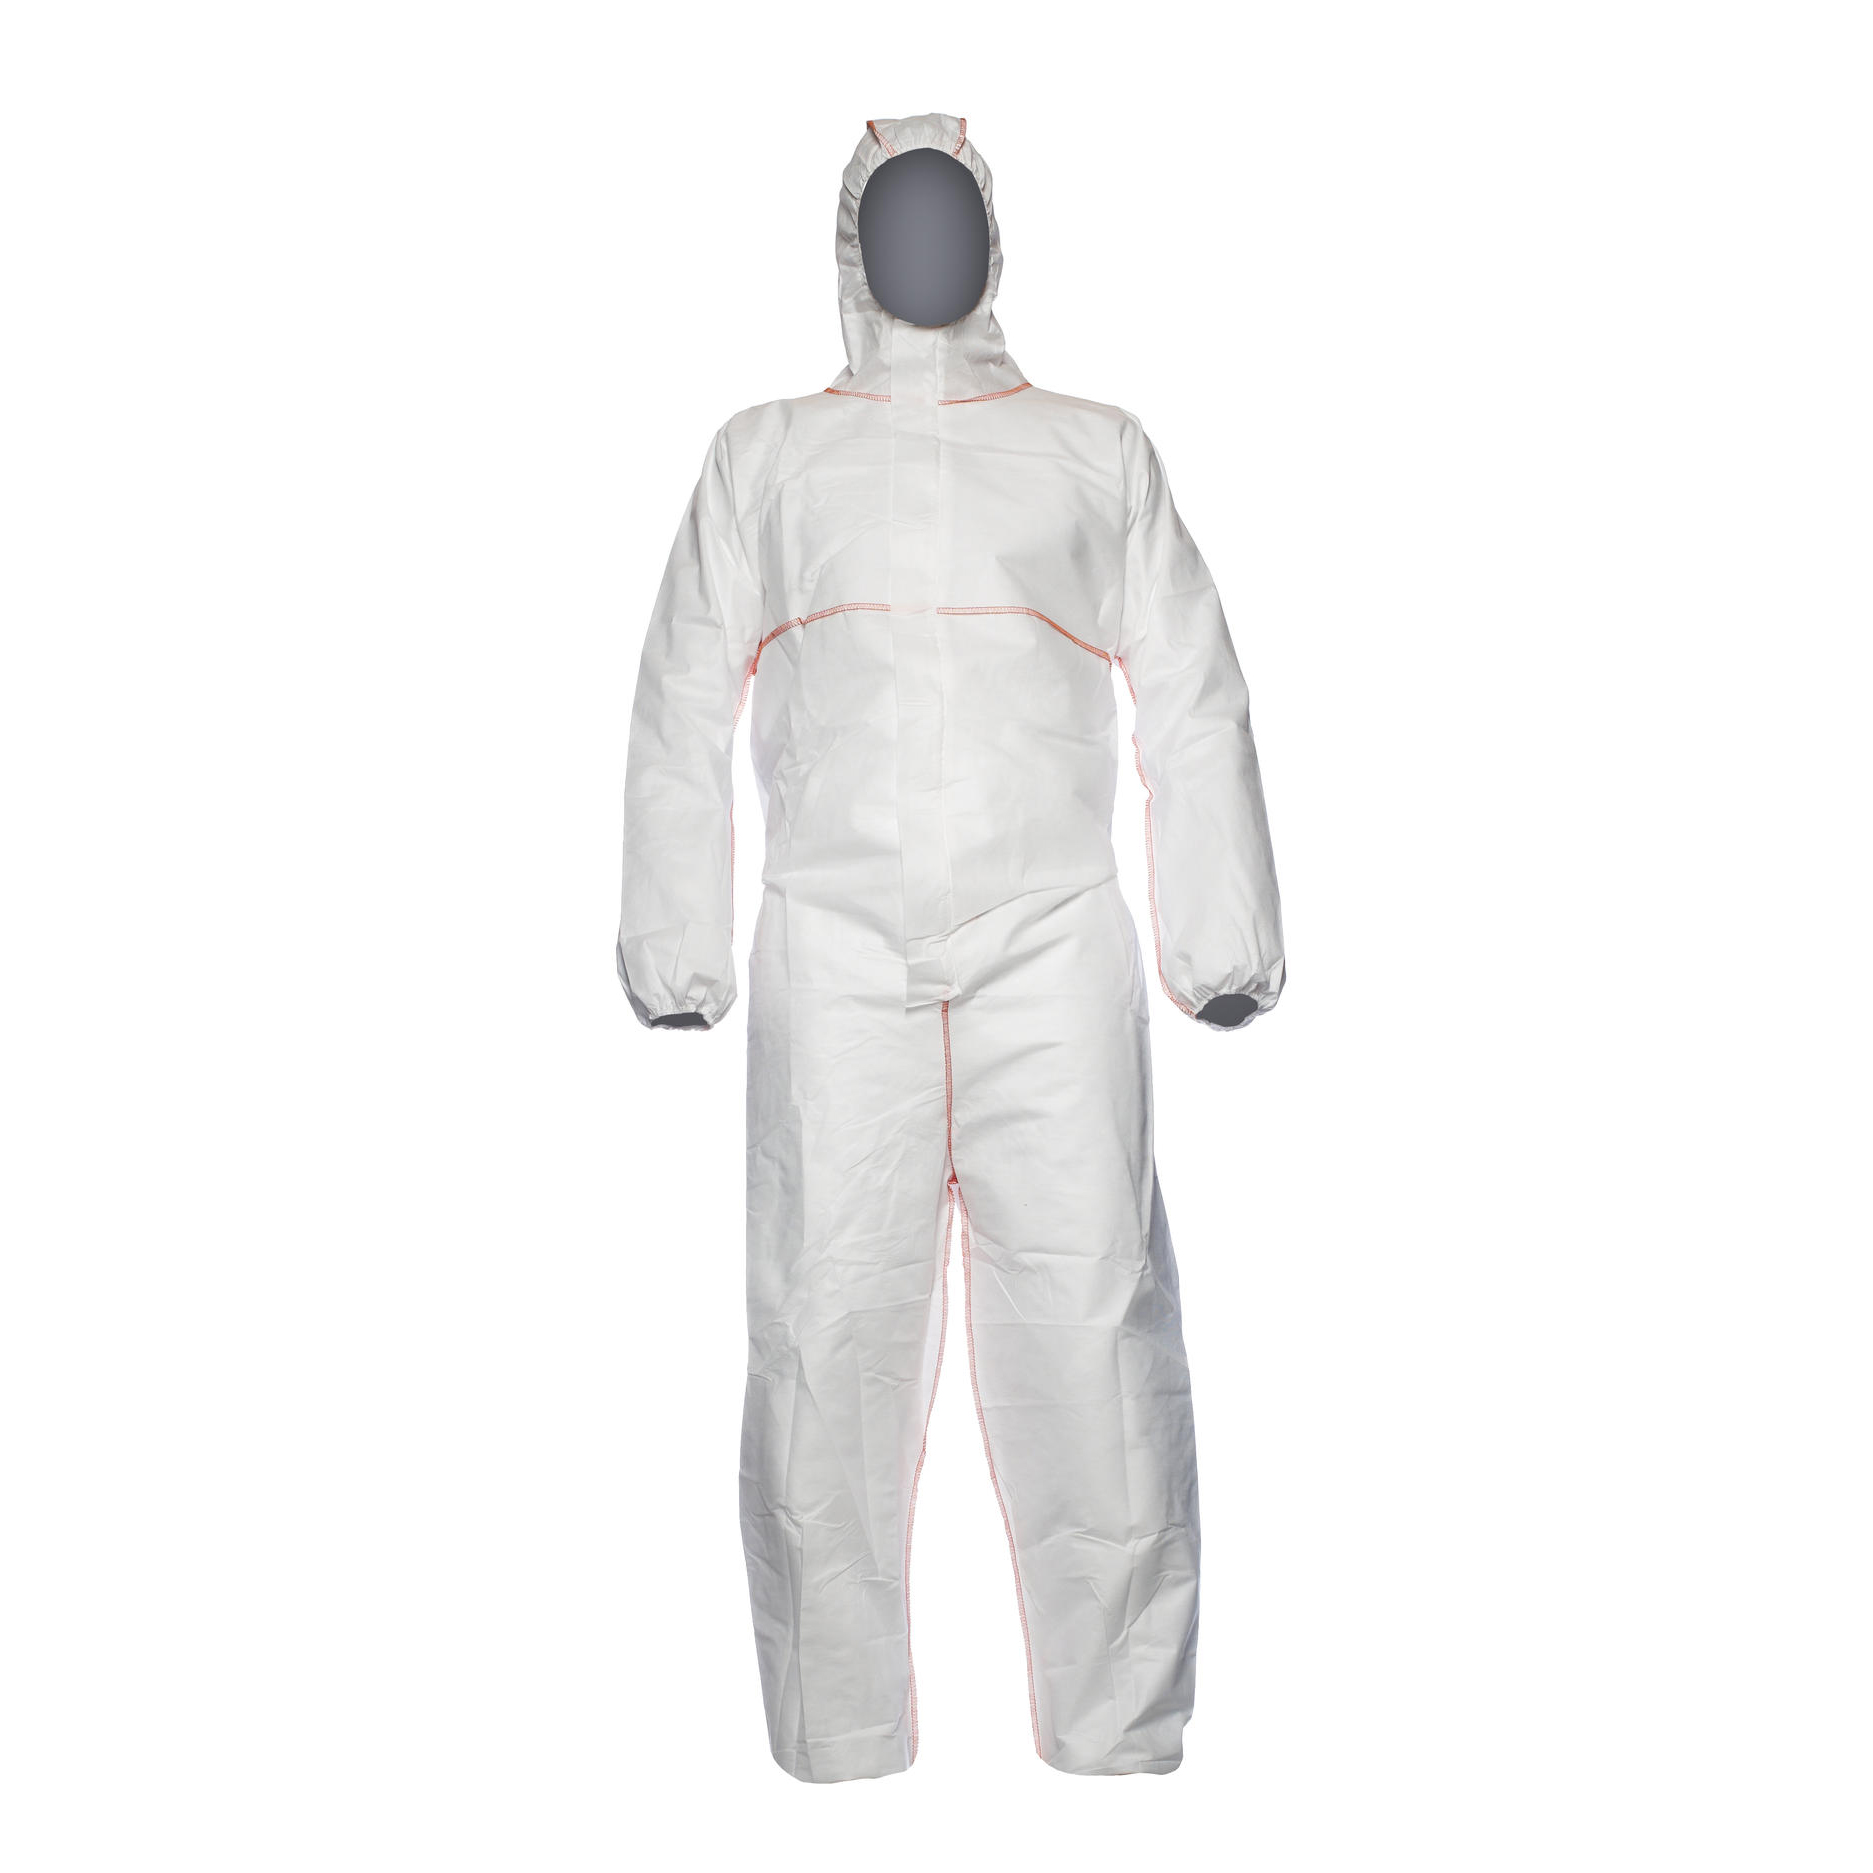 Protective coveralls Proshield Fire Resistant Coveralls White XL Ref PROFRXL *Up to 3 Day Leadtime*